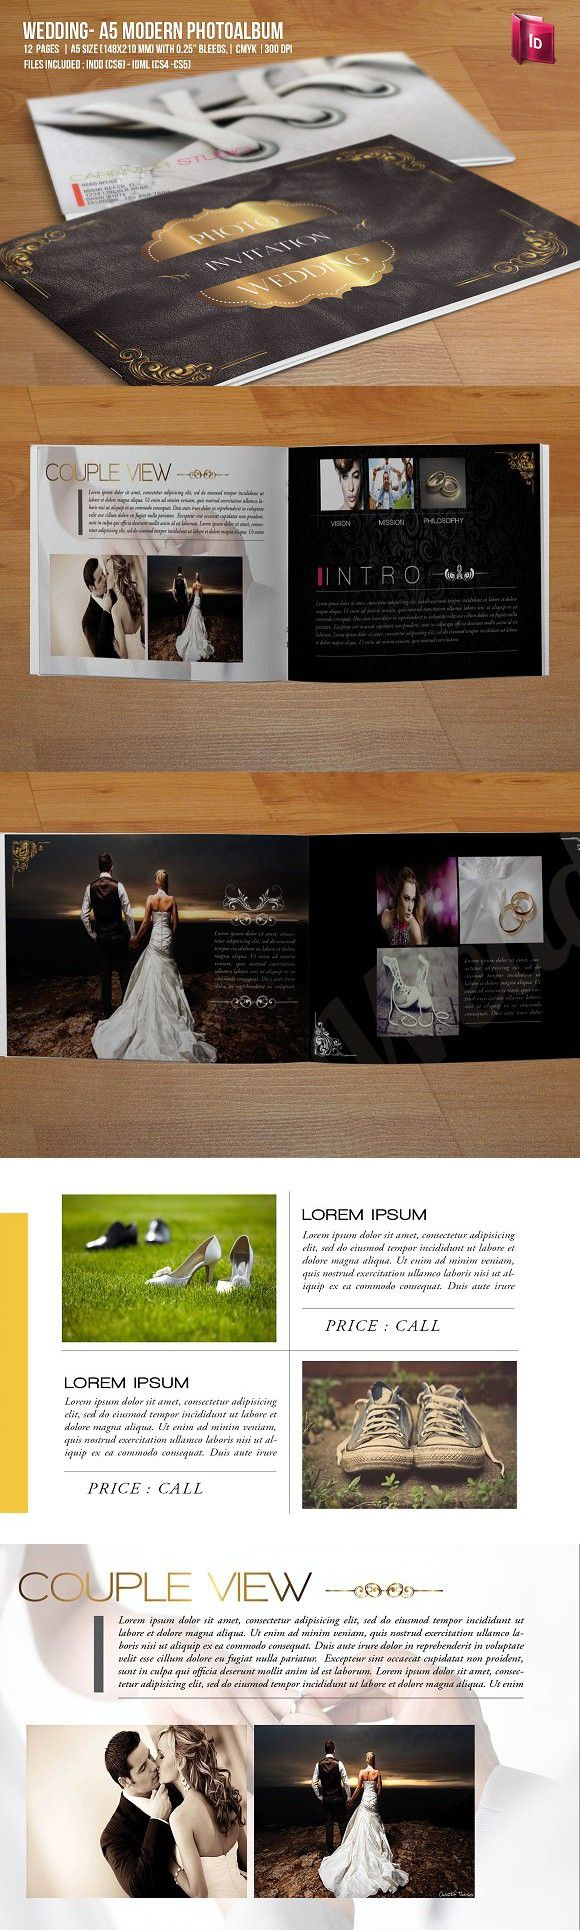 Wedding - A5 Modern Photo Album. Wedding Fonts